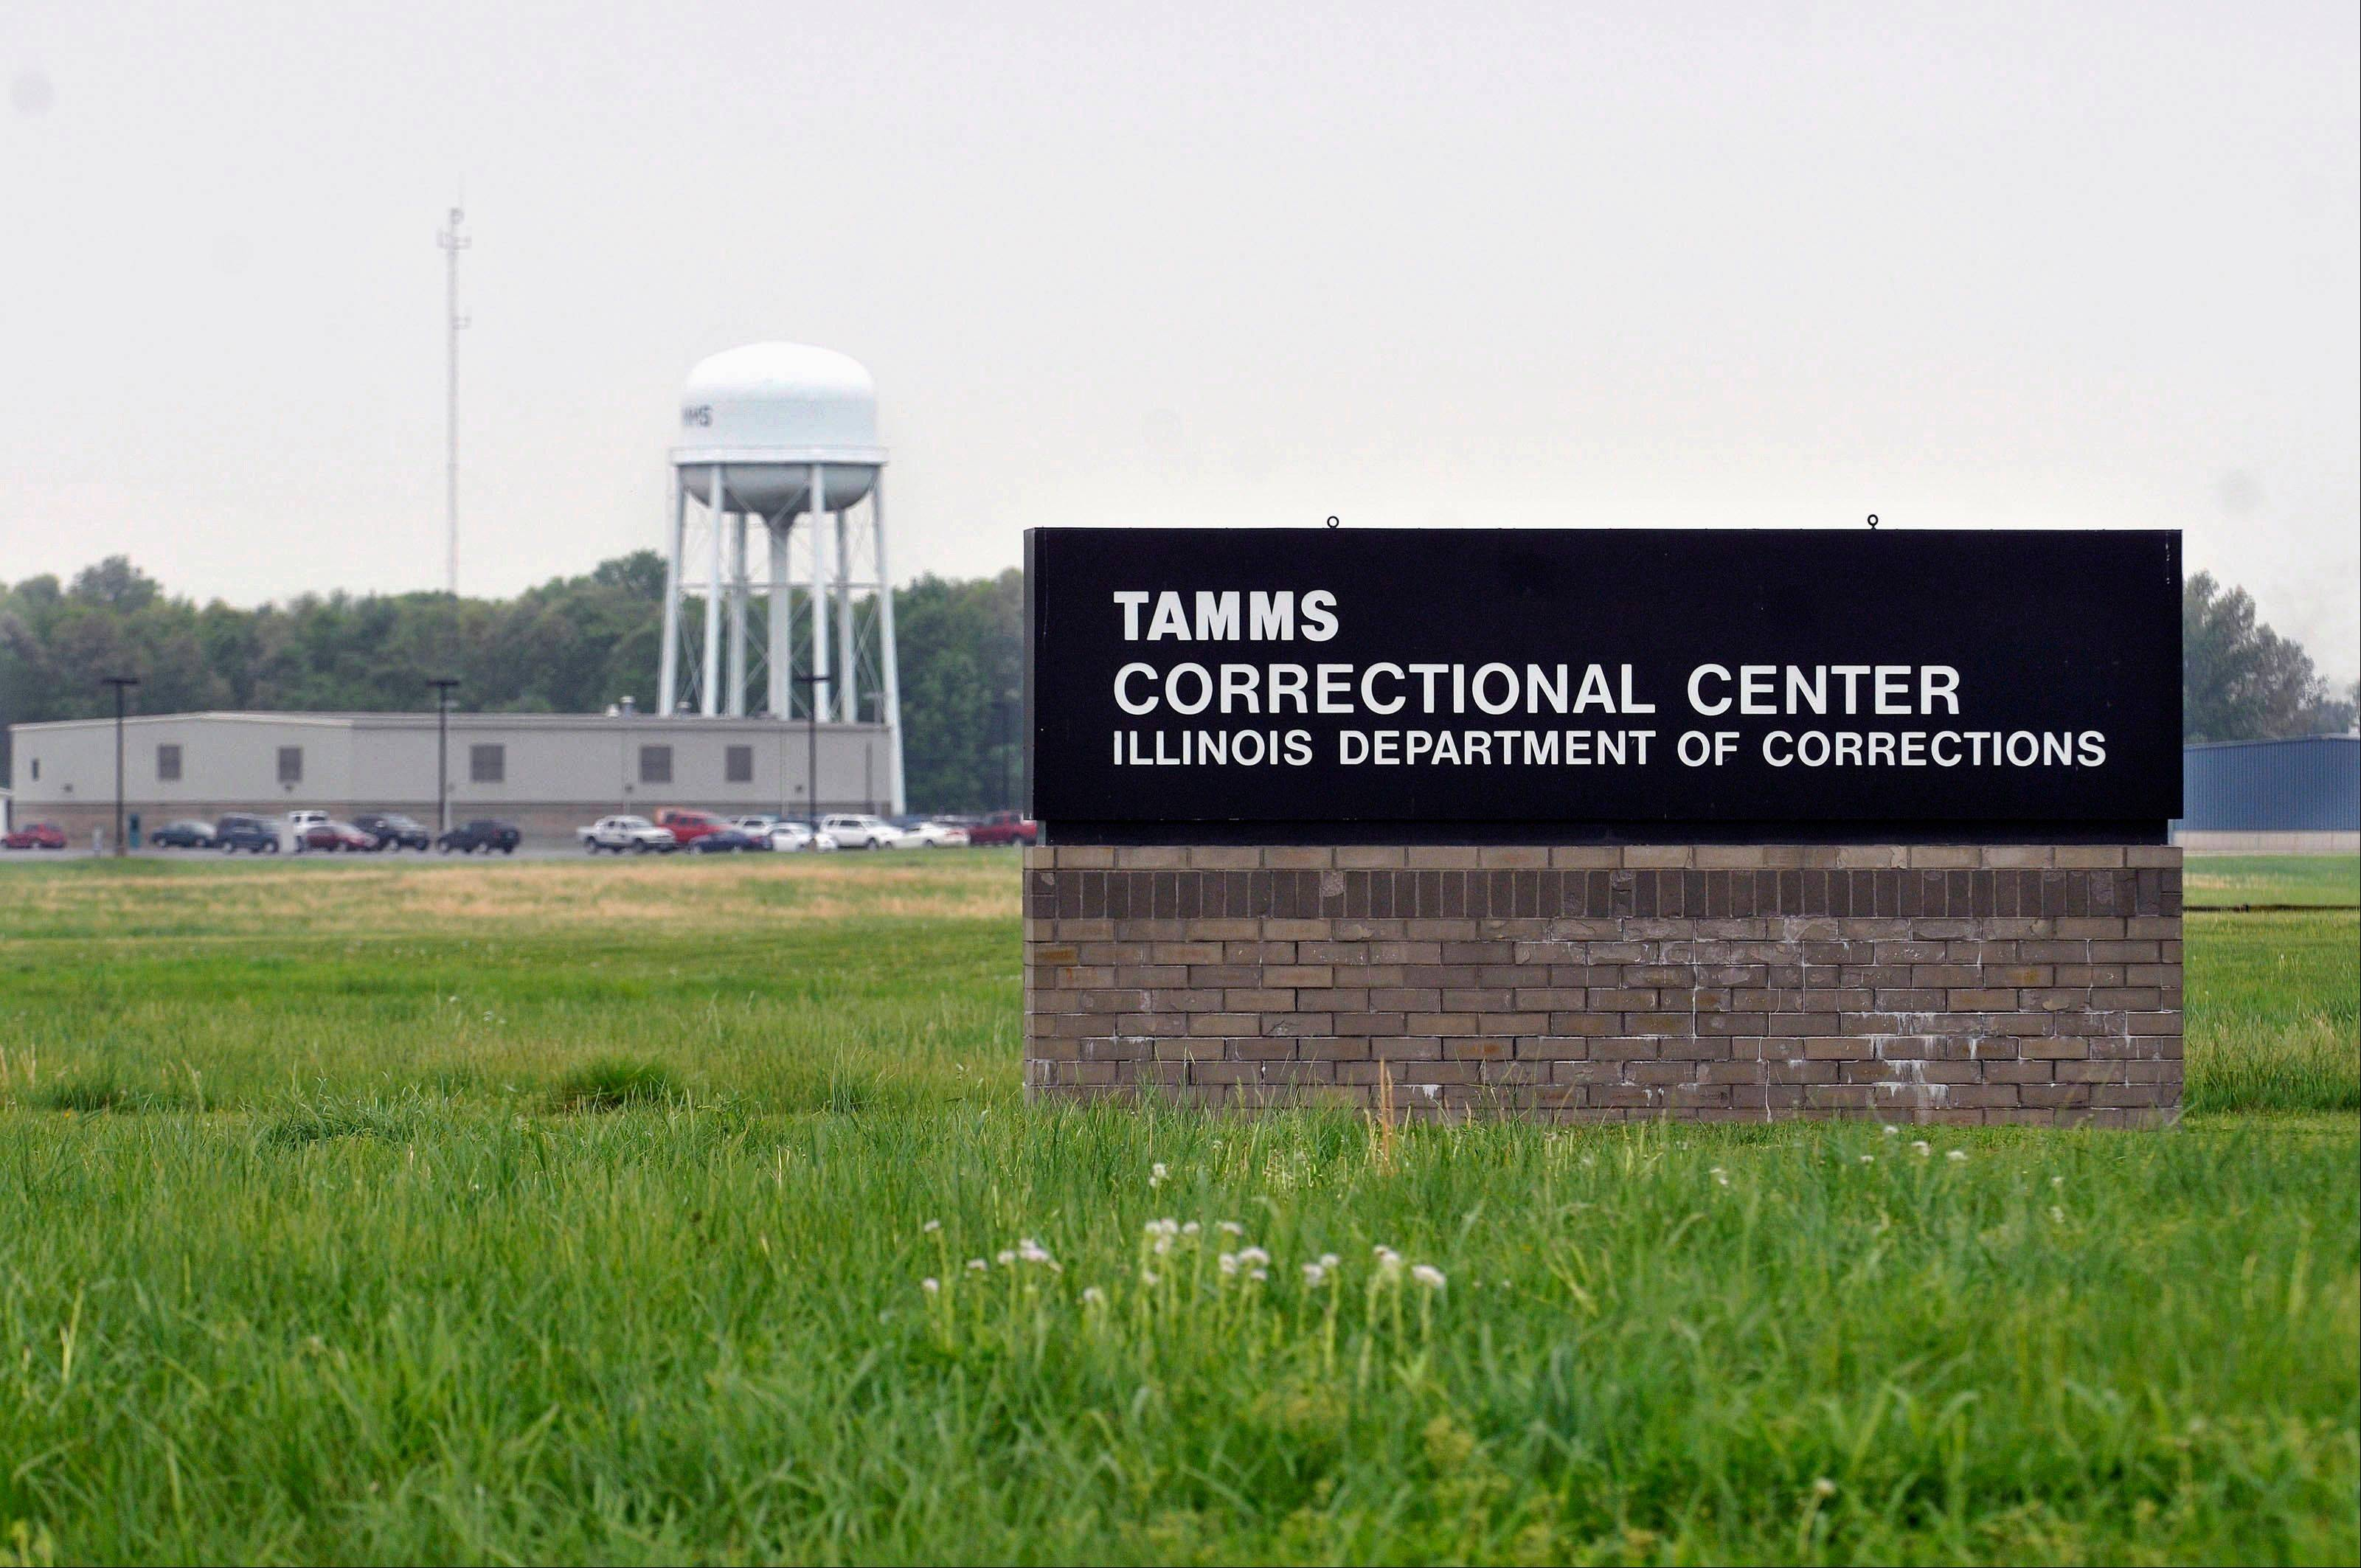 Tamms Correctional Center, Illinois' only super-maximum-security prison in Tamms. Illinois Gov. Pat Quinn's administration is softening its promise that inmates transferred from the high-security Tamms prison after it closes to Pontiac will be under 'identical' security rules.